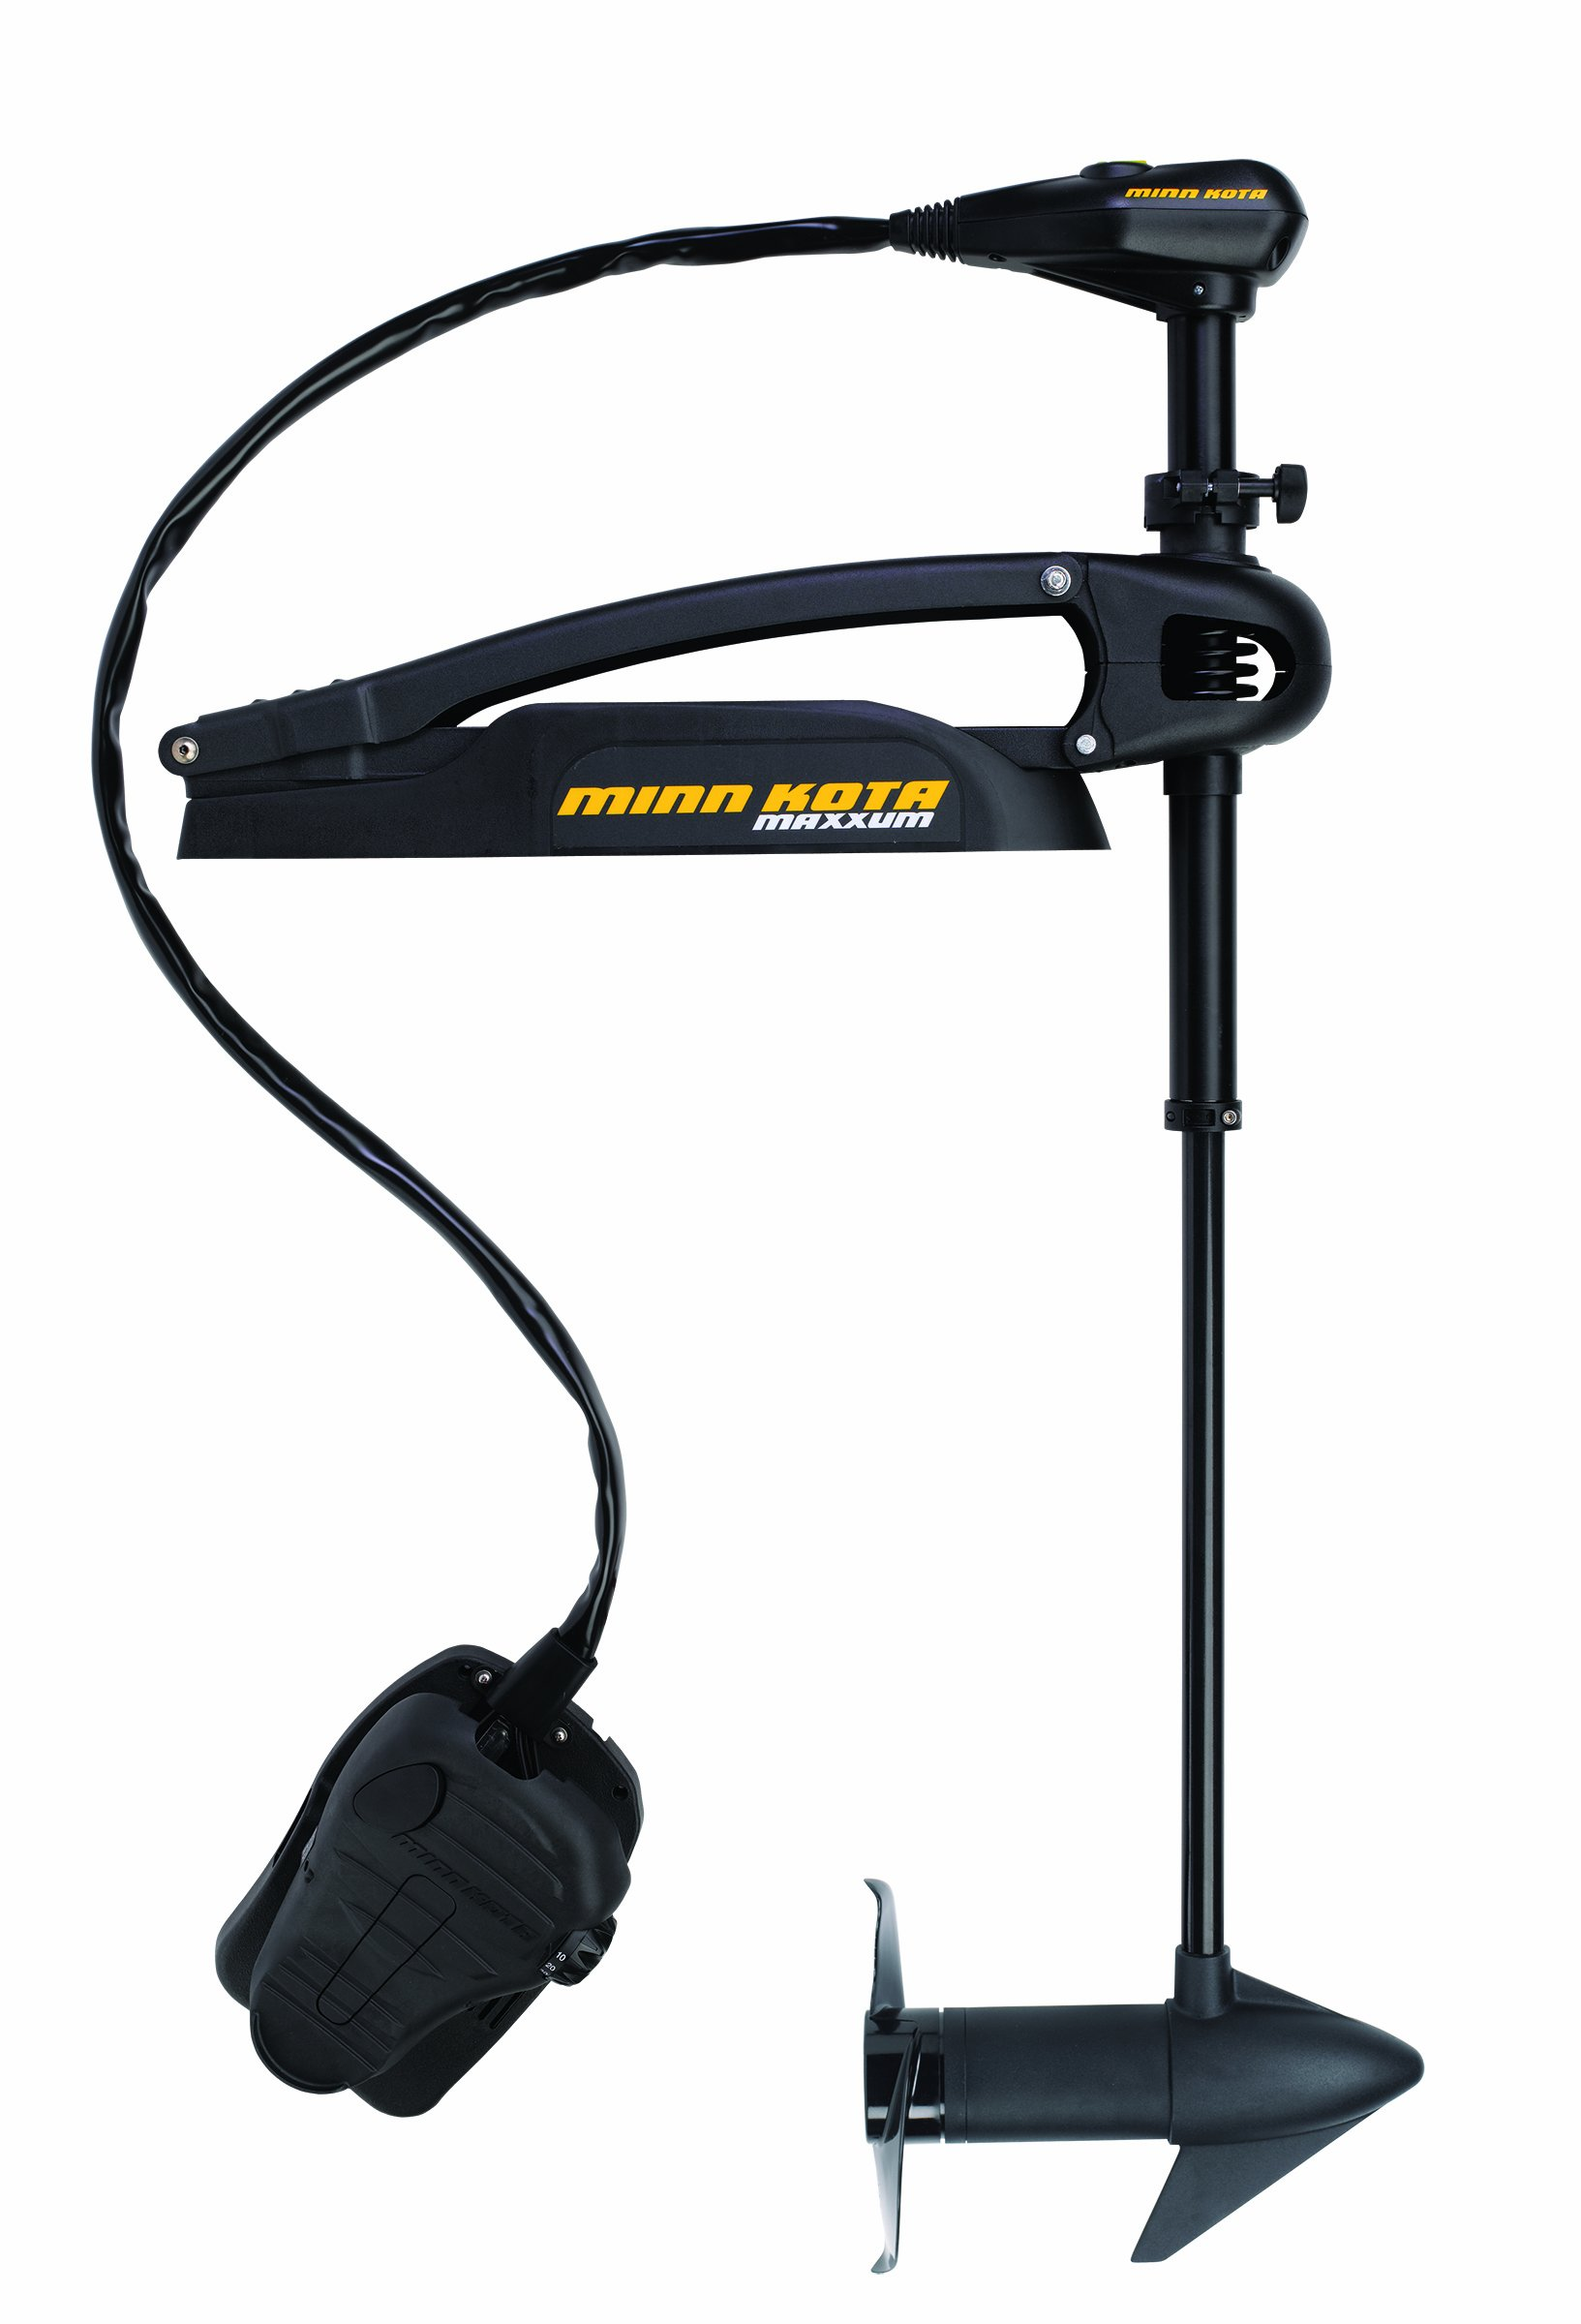 Minn Kota Maxxum 70 Bow-Mount Trolling Motor with Foot Control and Bowguard (70-lb Thrust, 42'' Shaft) by Minn Kota